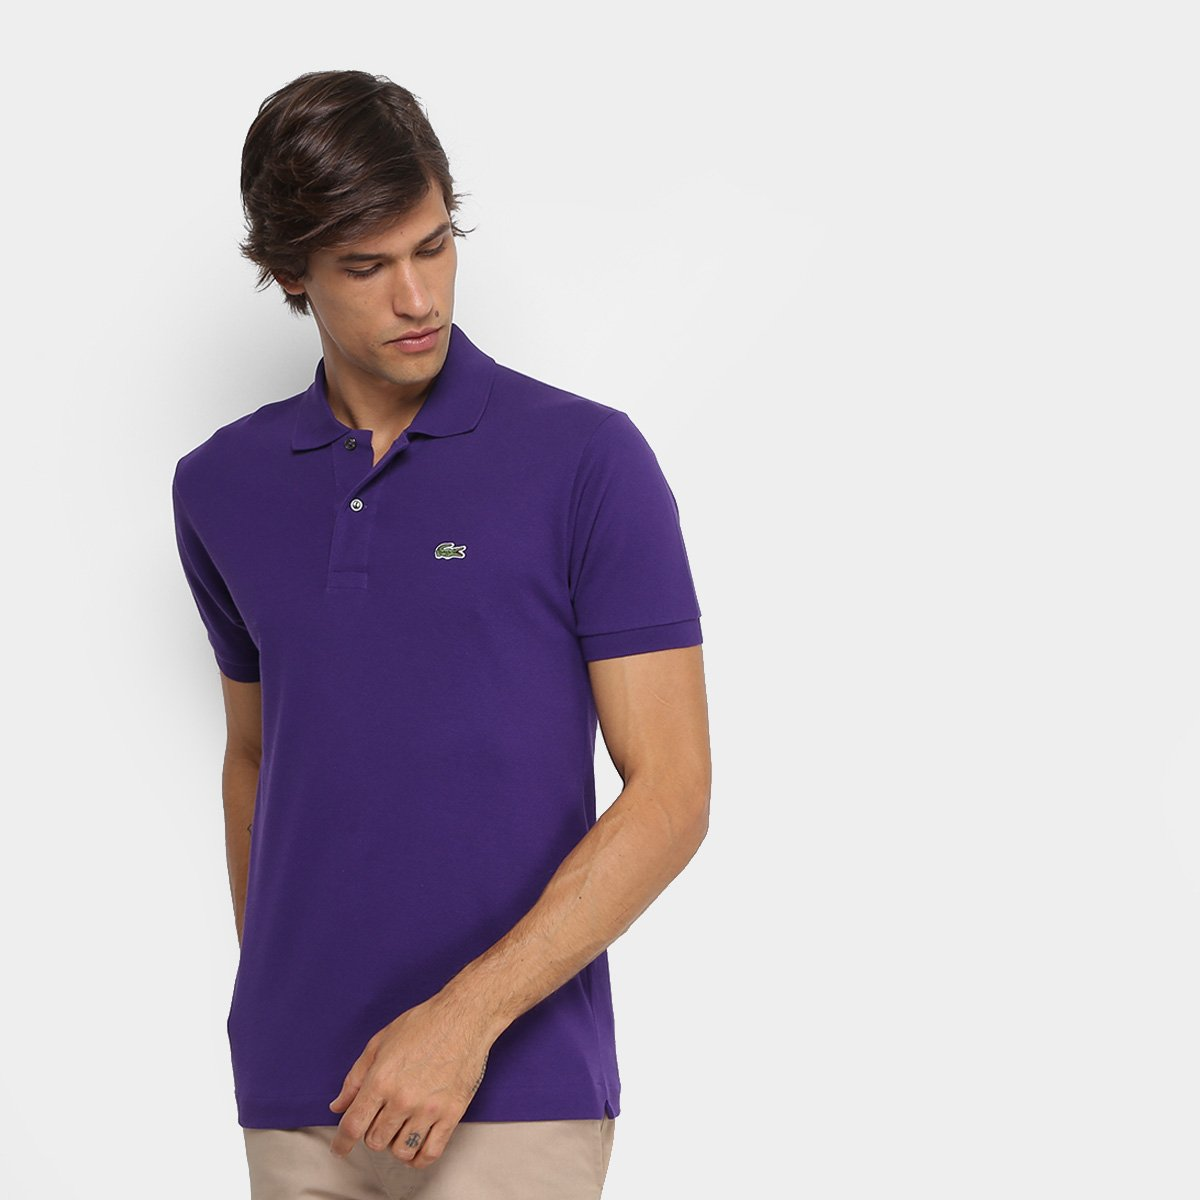 Camisa Polo Lacoste Piquet Original Masculina. undefined 80be8db20d299